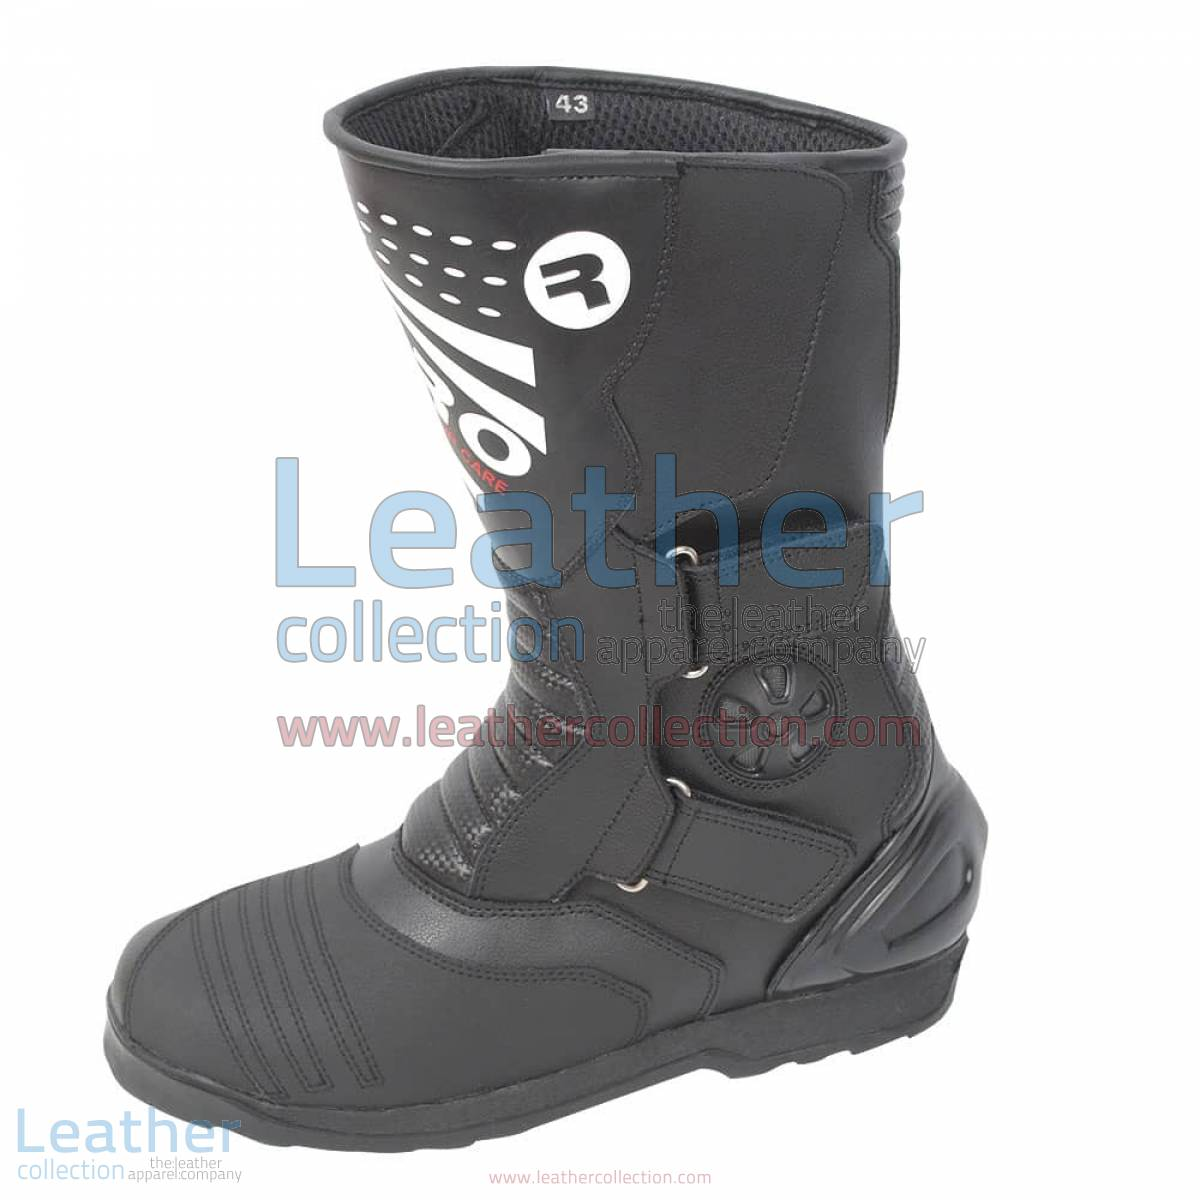 Superior Biker Leather Boots | biker leather boots